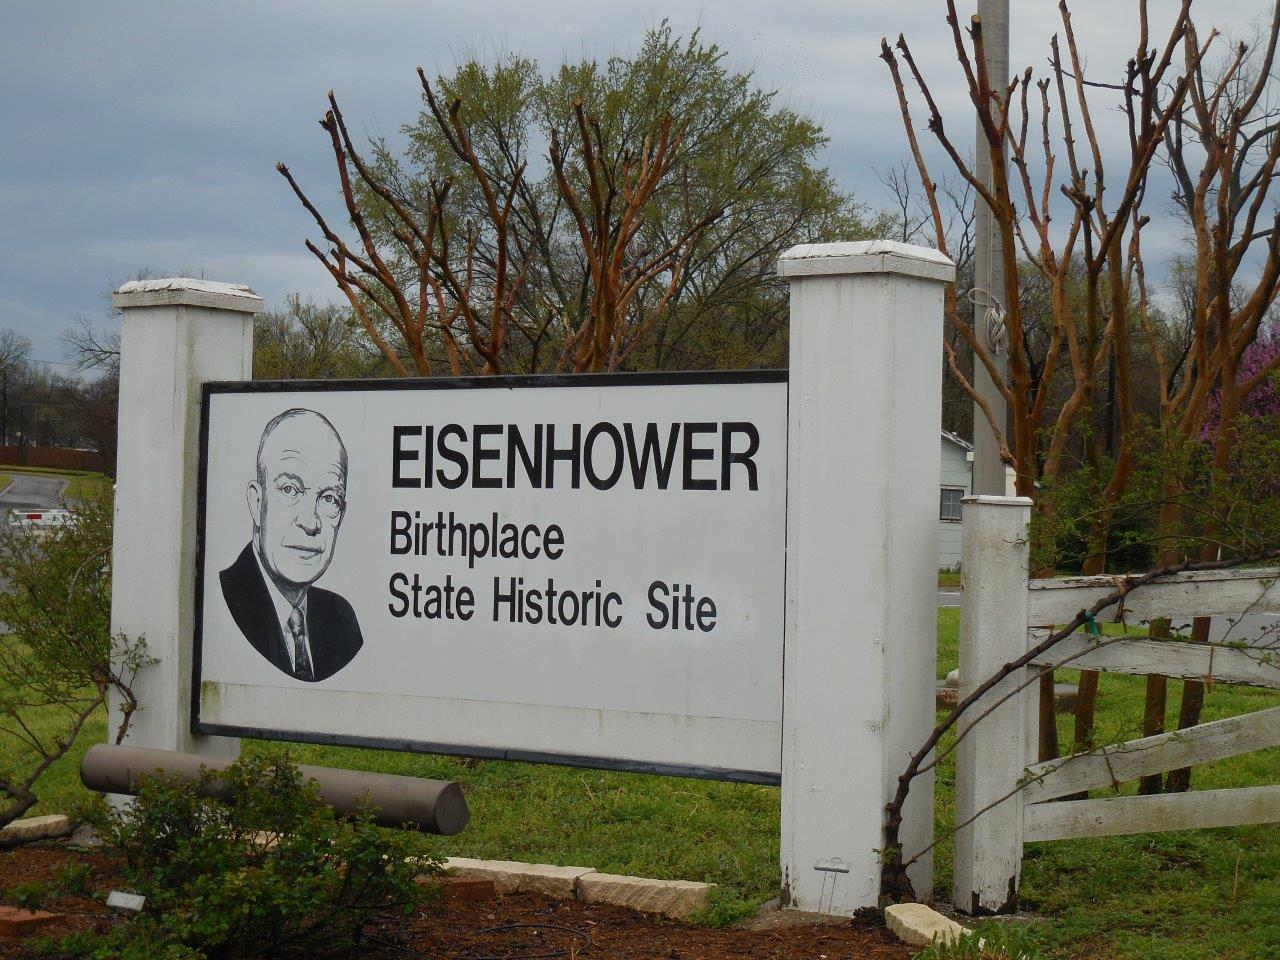 Dwight Eisenhower birthplace state historic site sign